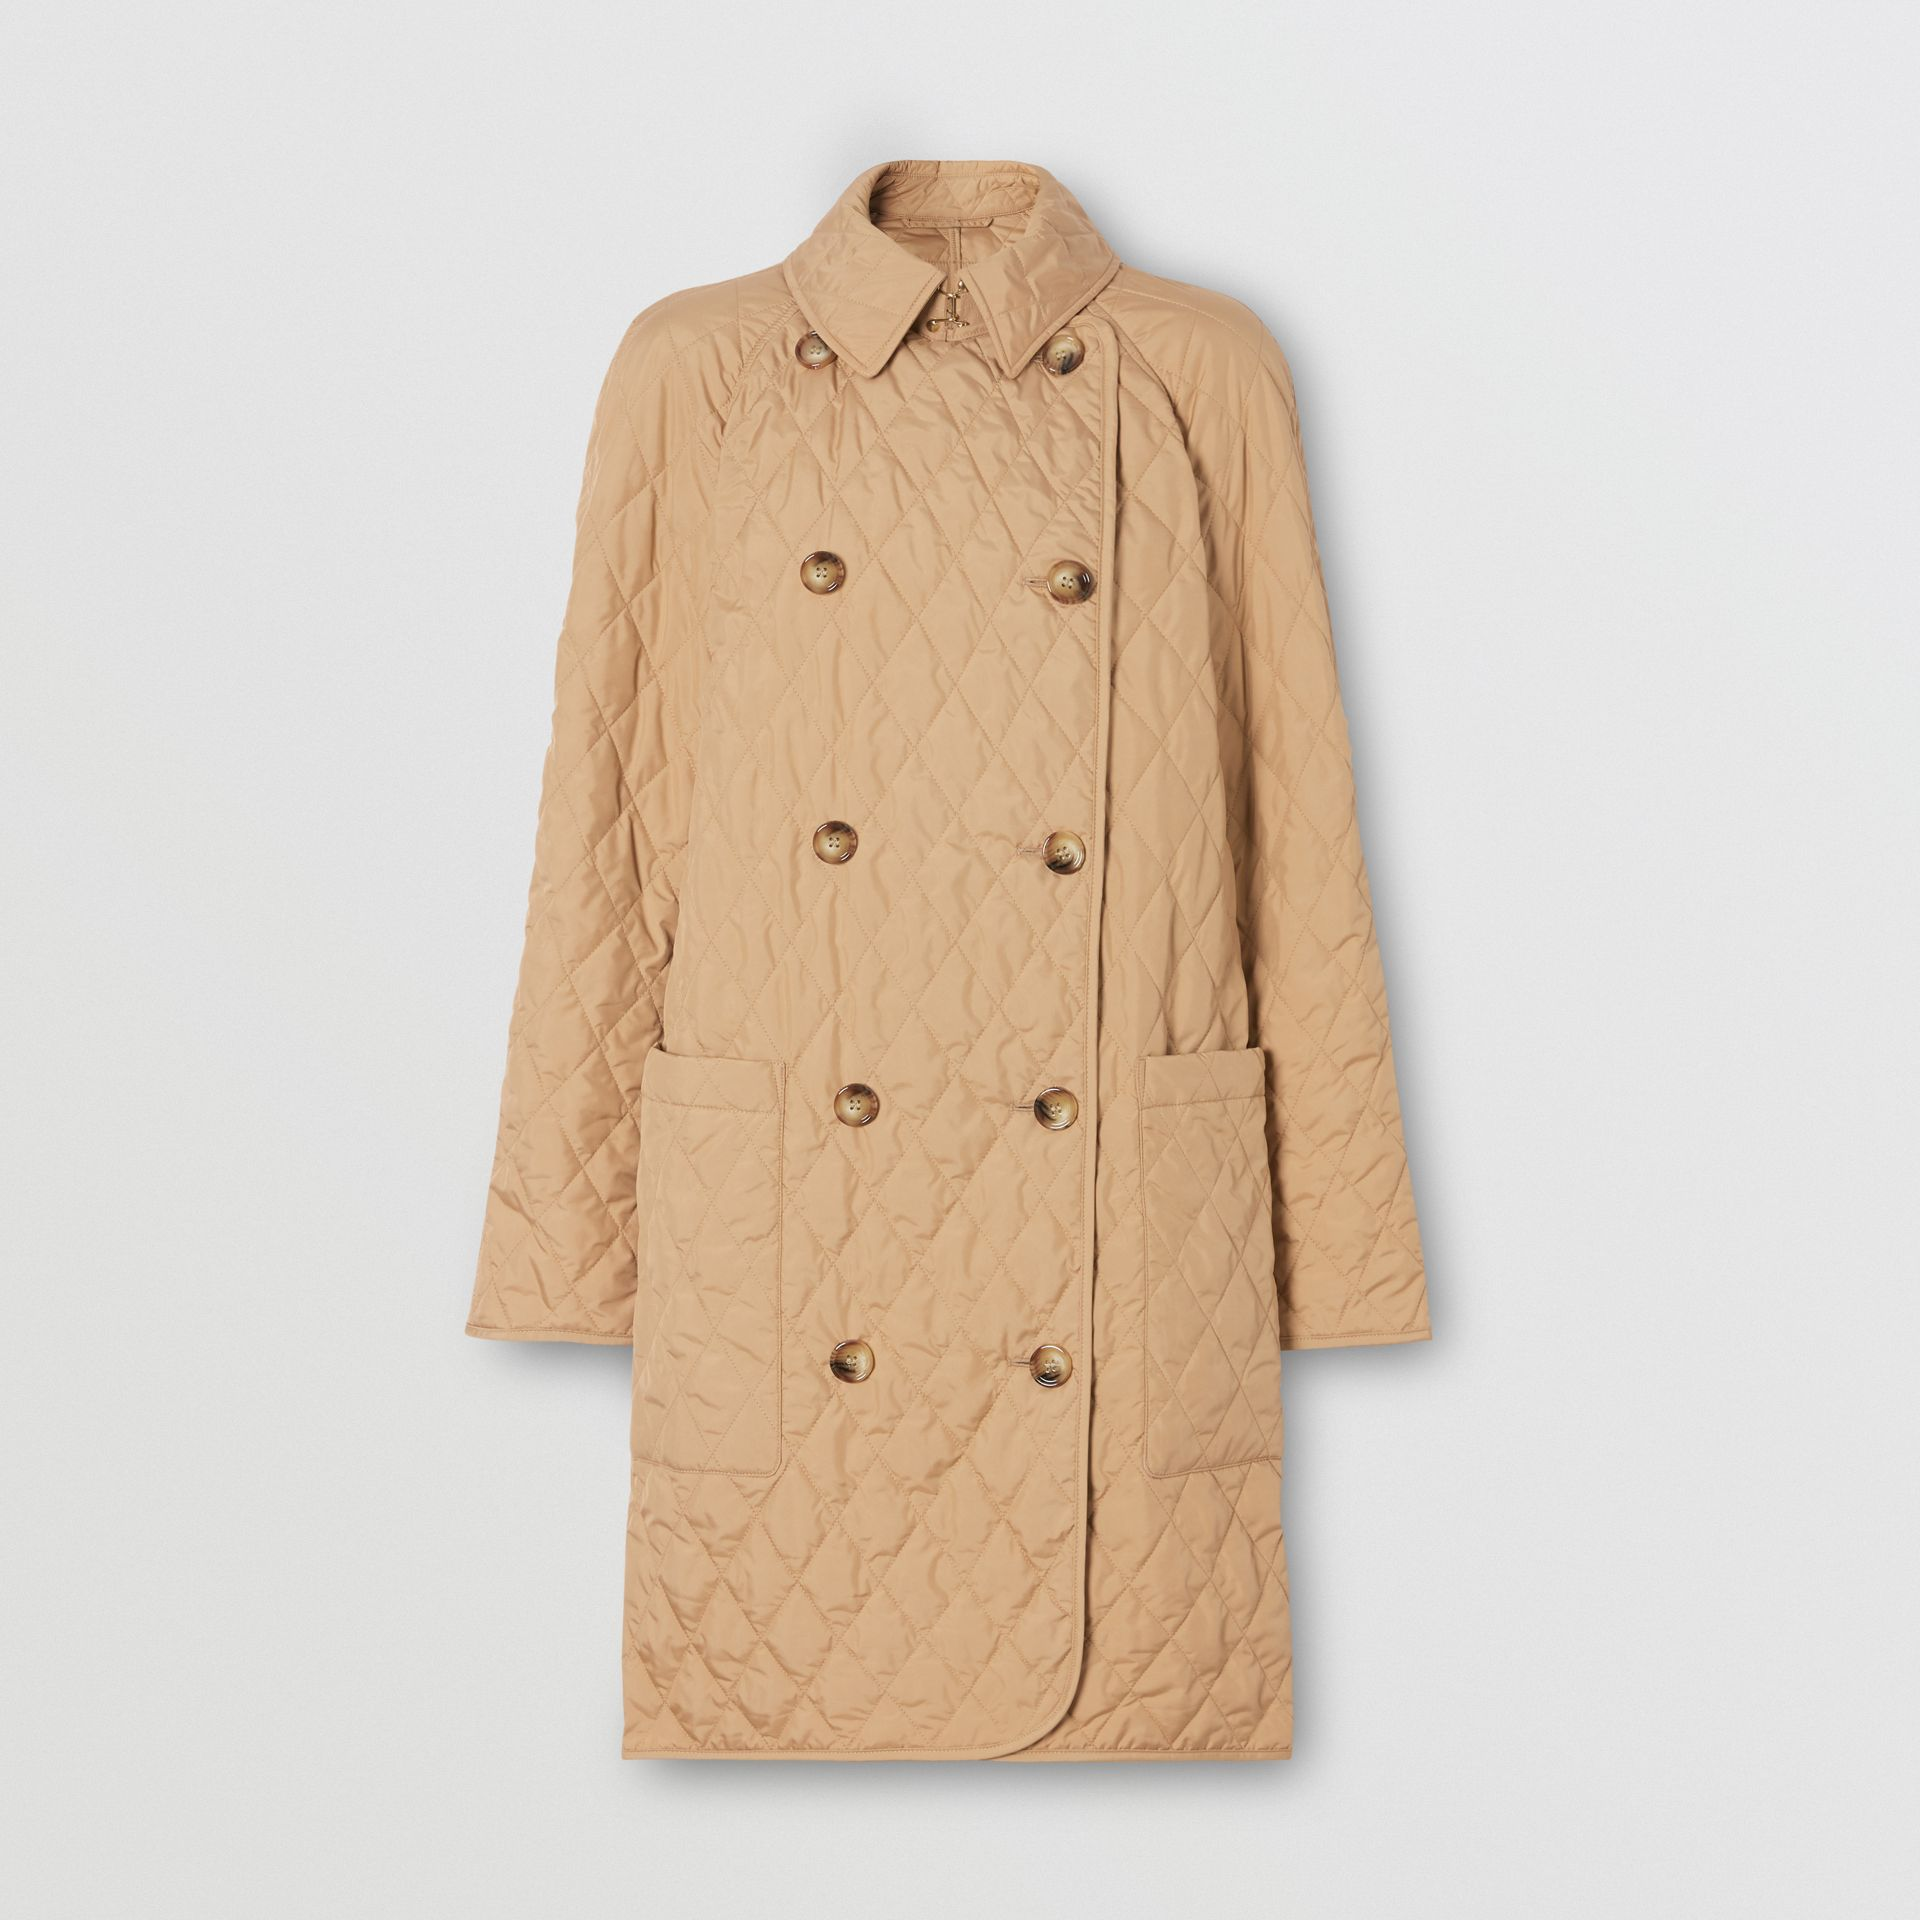 Diamond Quilted Double-breasted Coat in Biscuit - Women | Burberry United Kingdom - gallery image 3